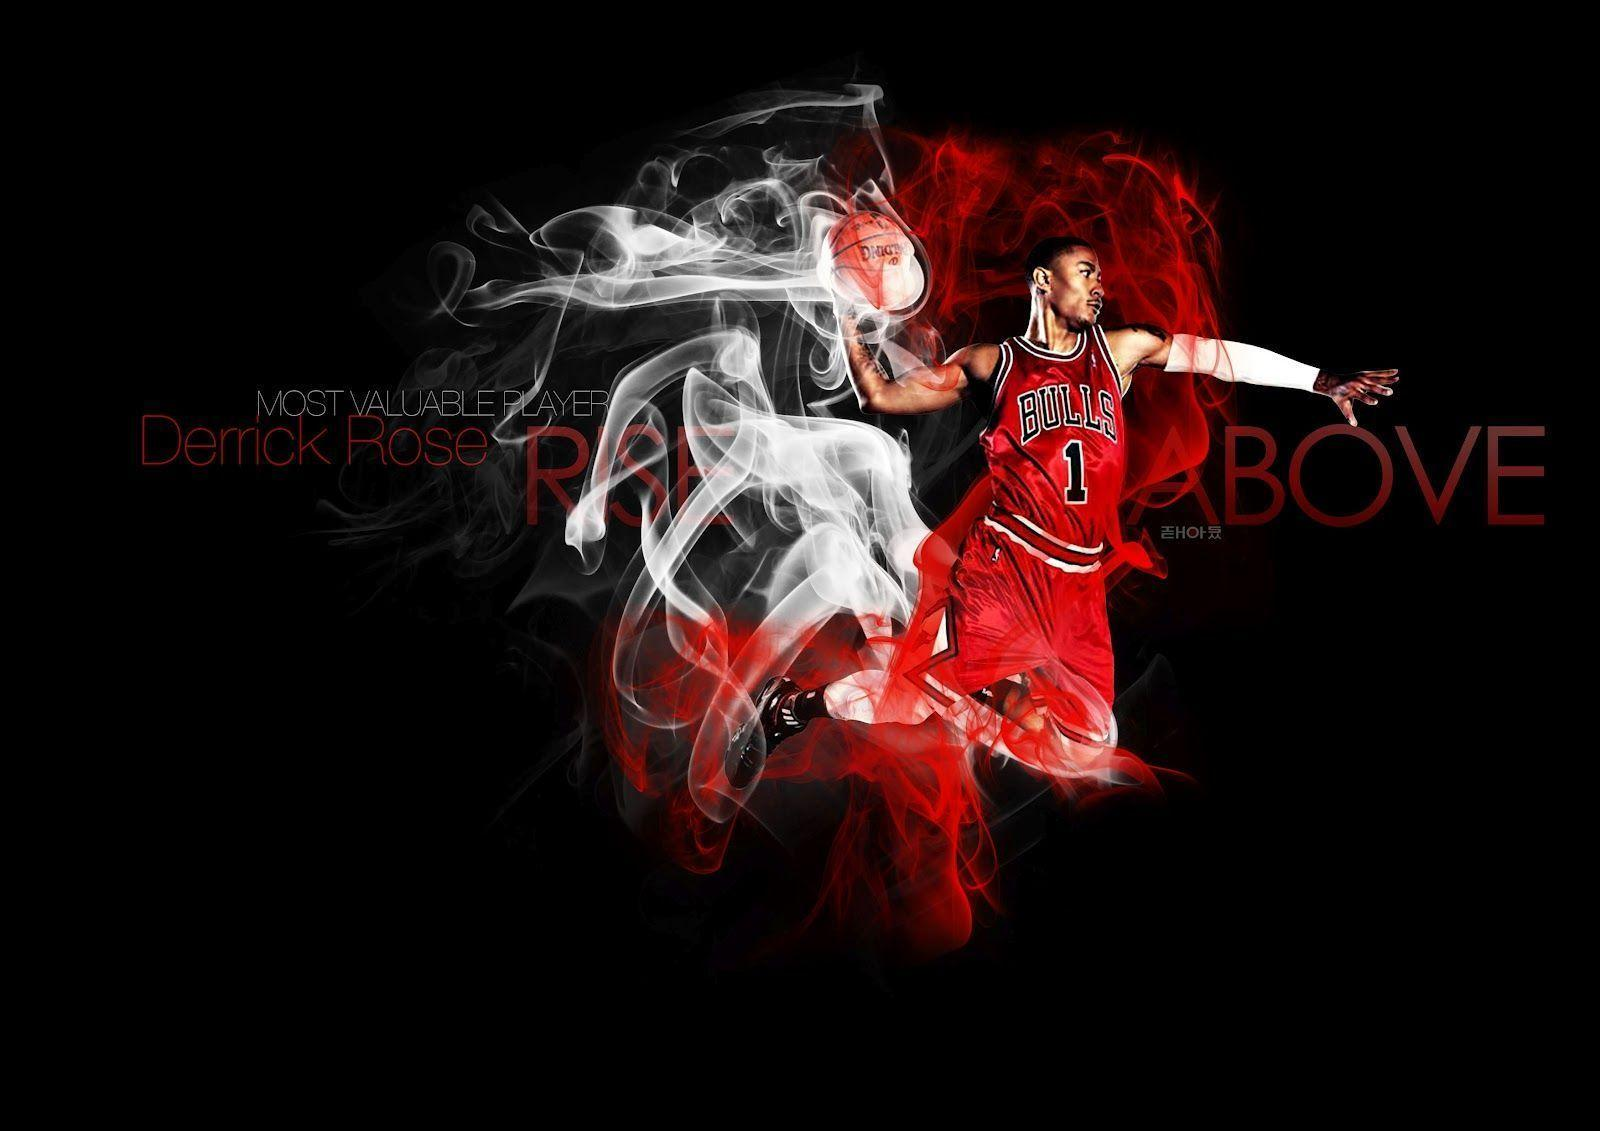 Wallpapers For > Derrick Rose Wallpapers The Return